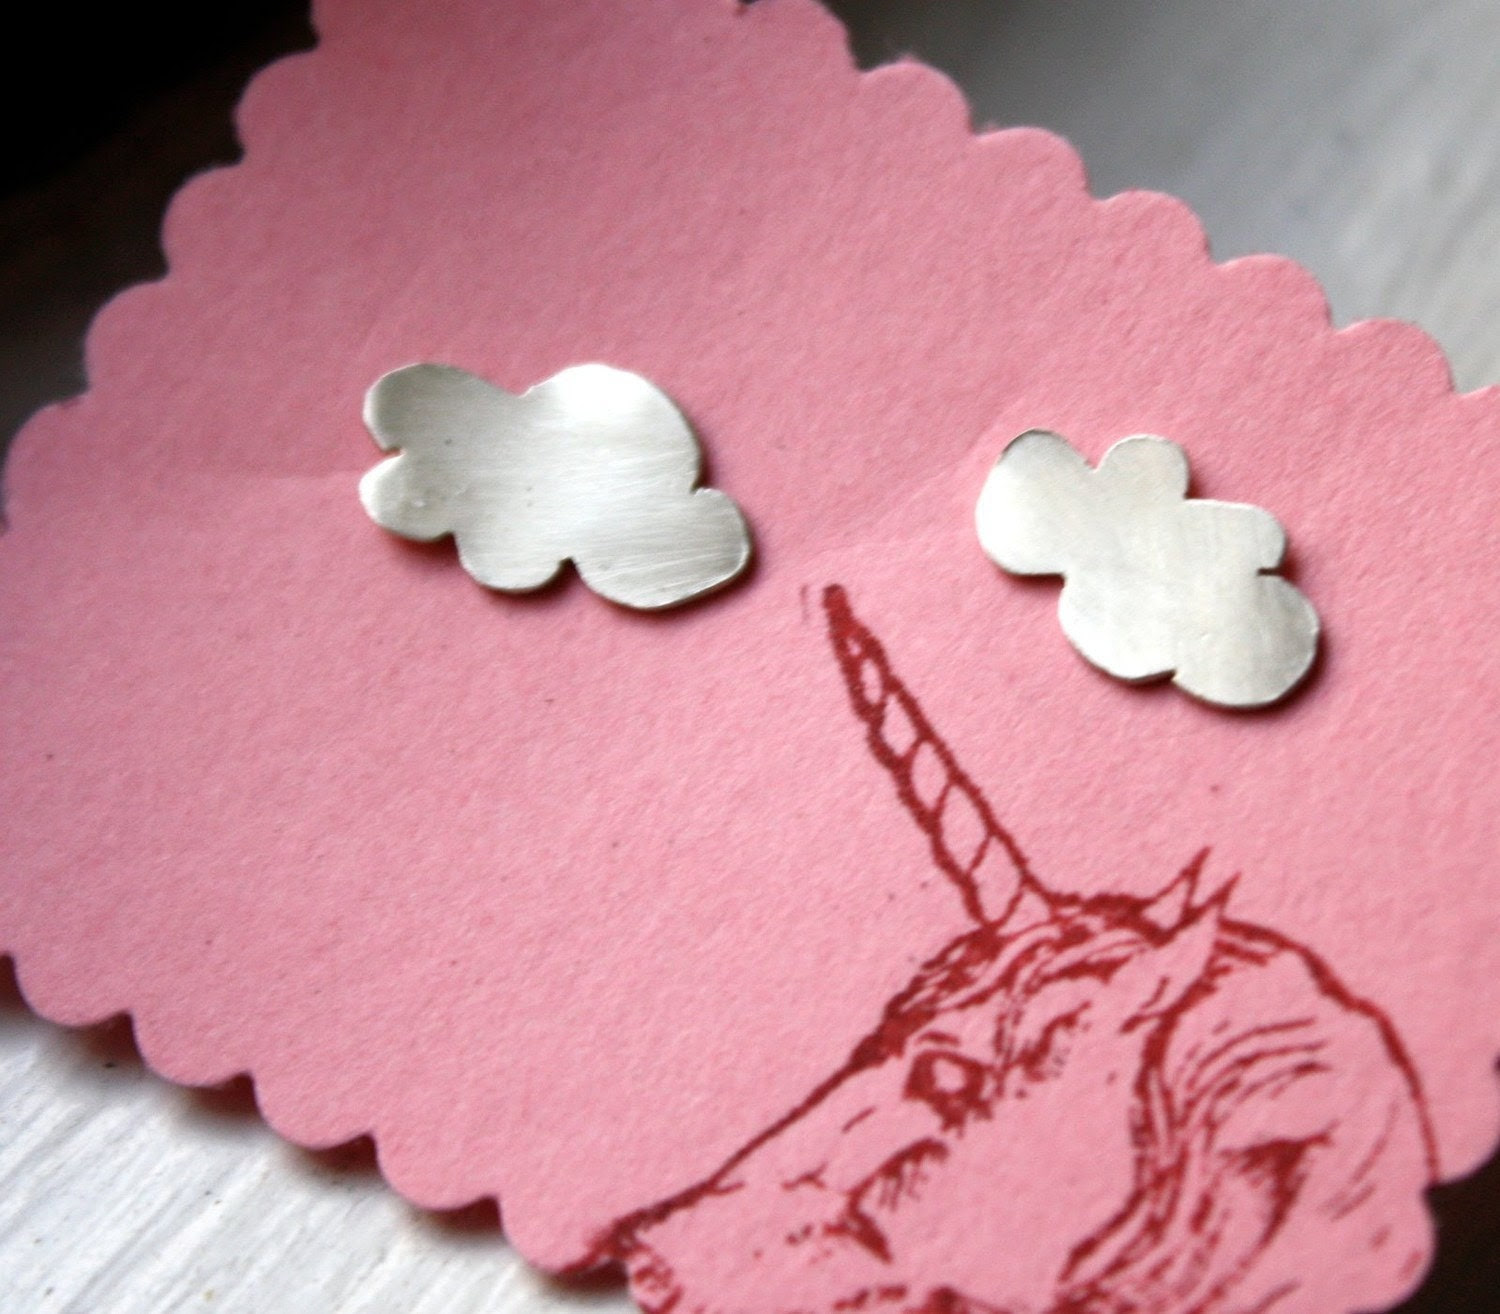 Brushed Sterling Silver Handmade Cloud Studs by Rachel Pfeffer